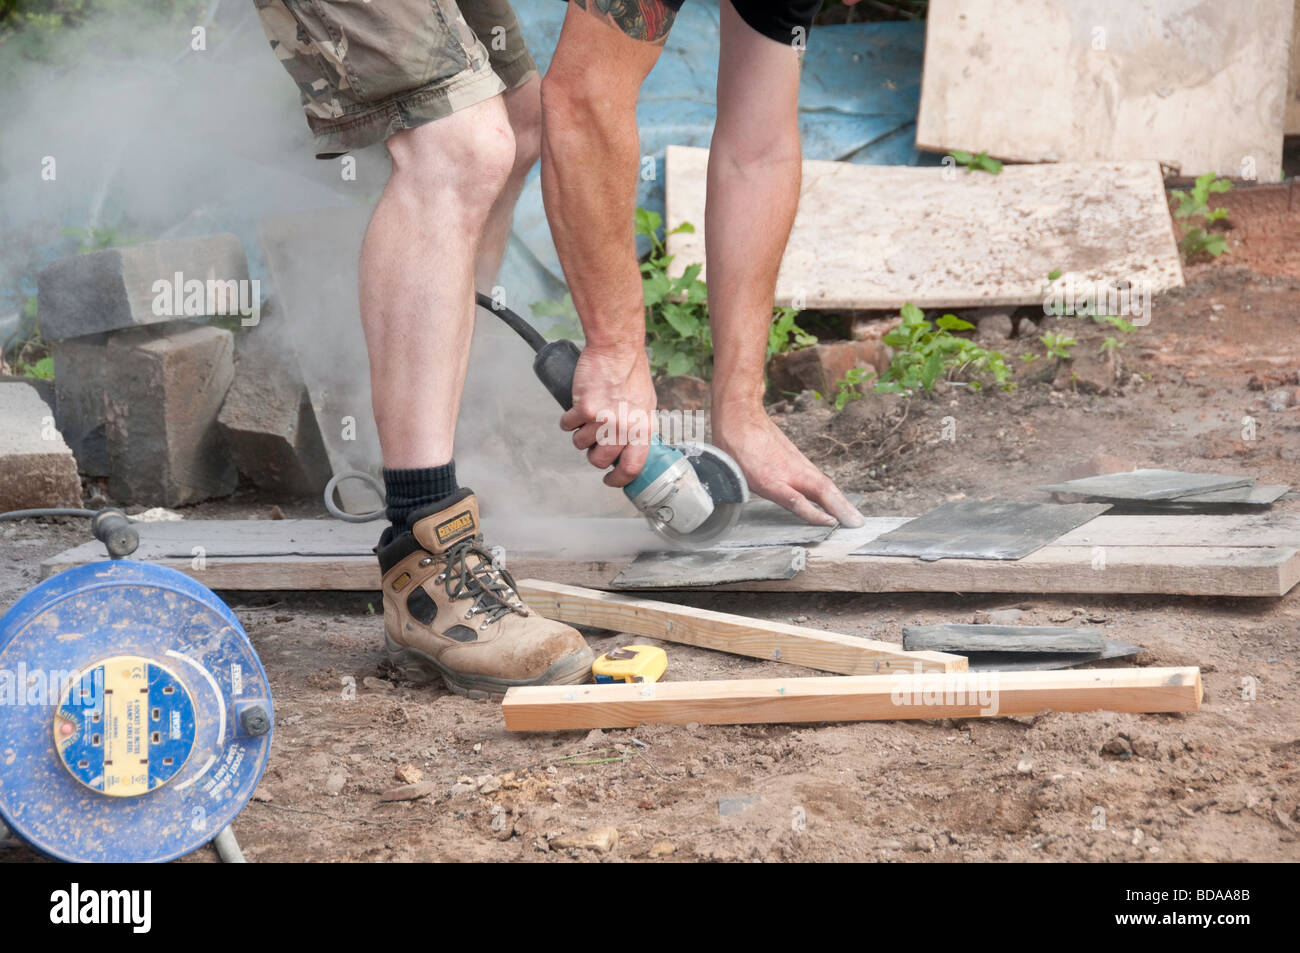 Reclaimed roofing tiles being cut with angle grinder - Stock Image